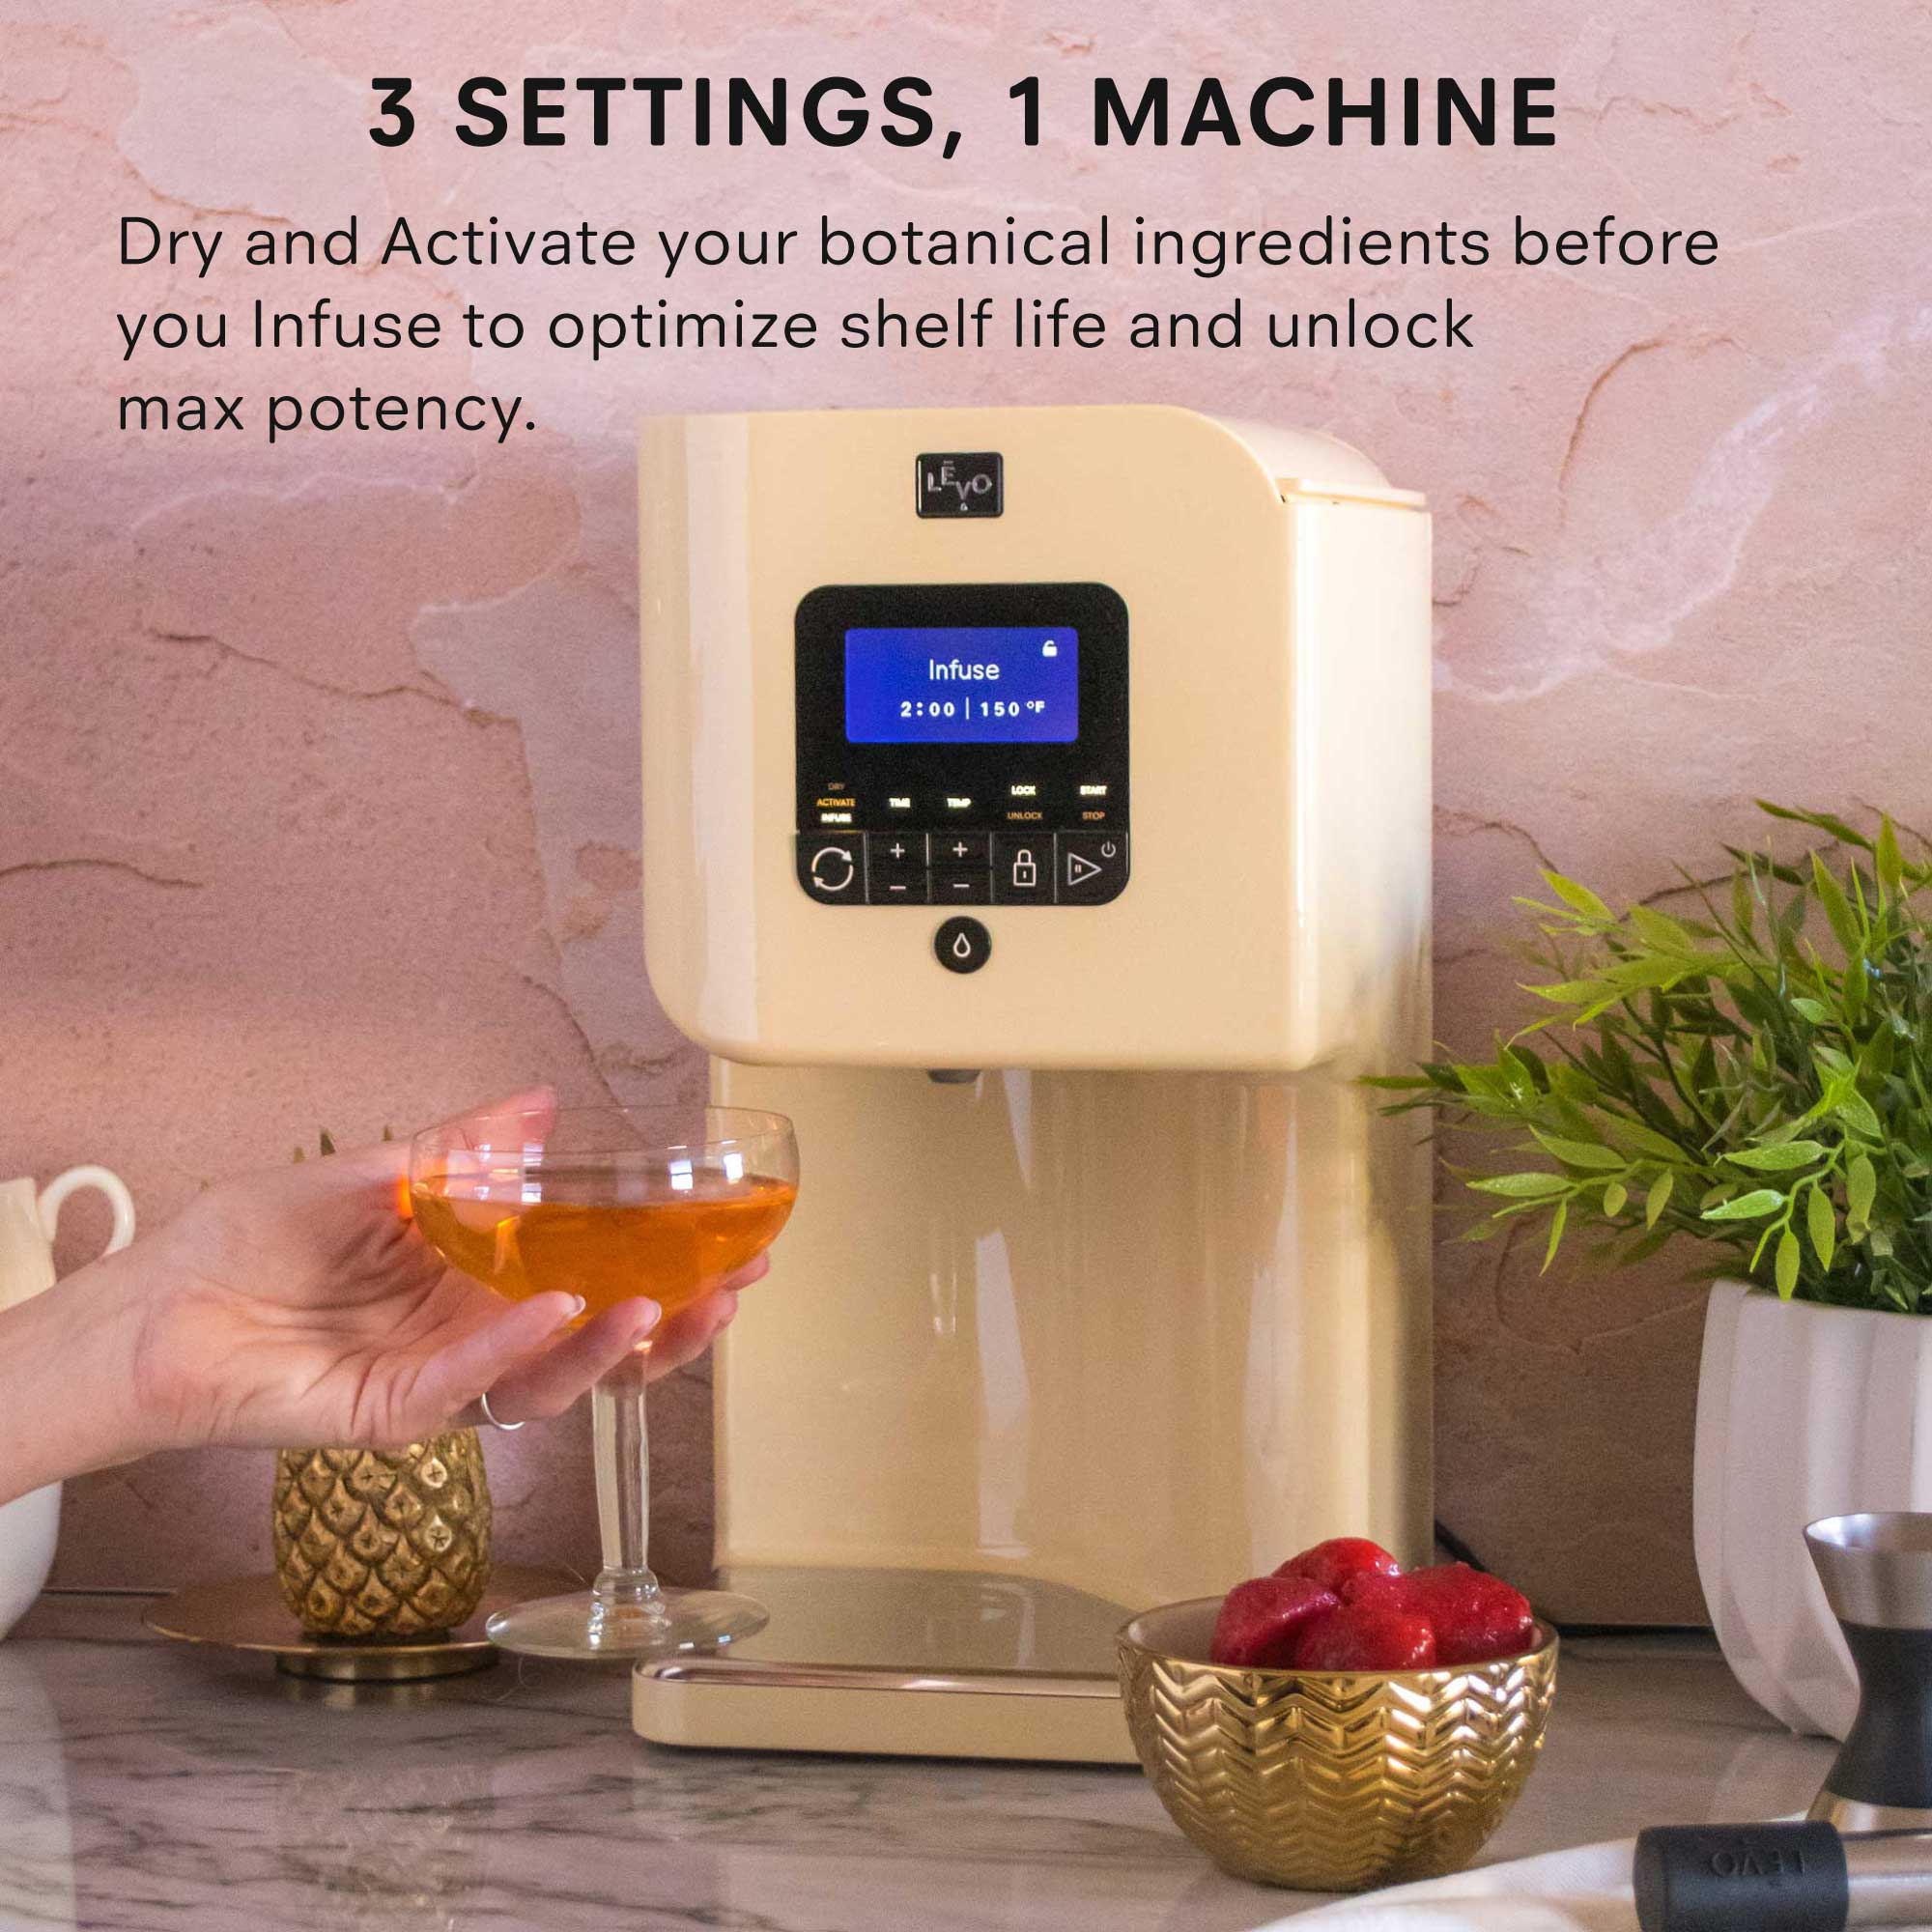 3 settings, 1 machine. LEVO II will dry fresh herbs, activate flower and infuse any base of your choice, including water-based liquids.